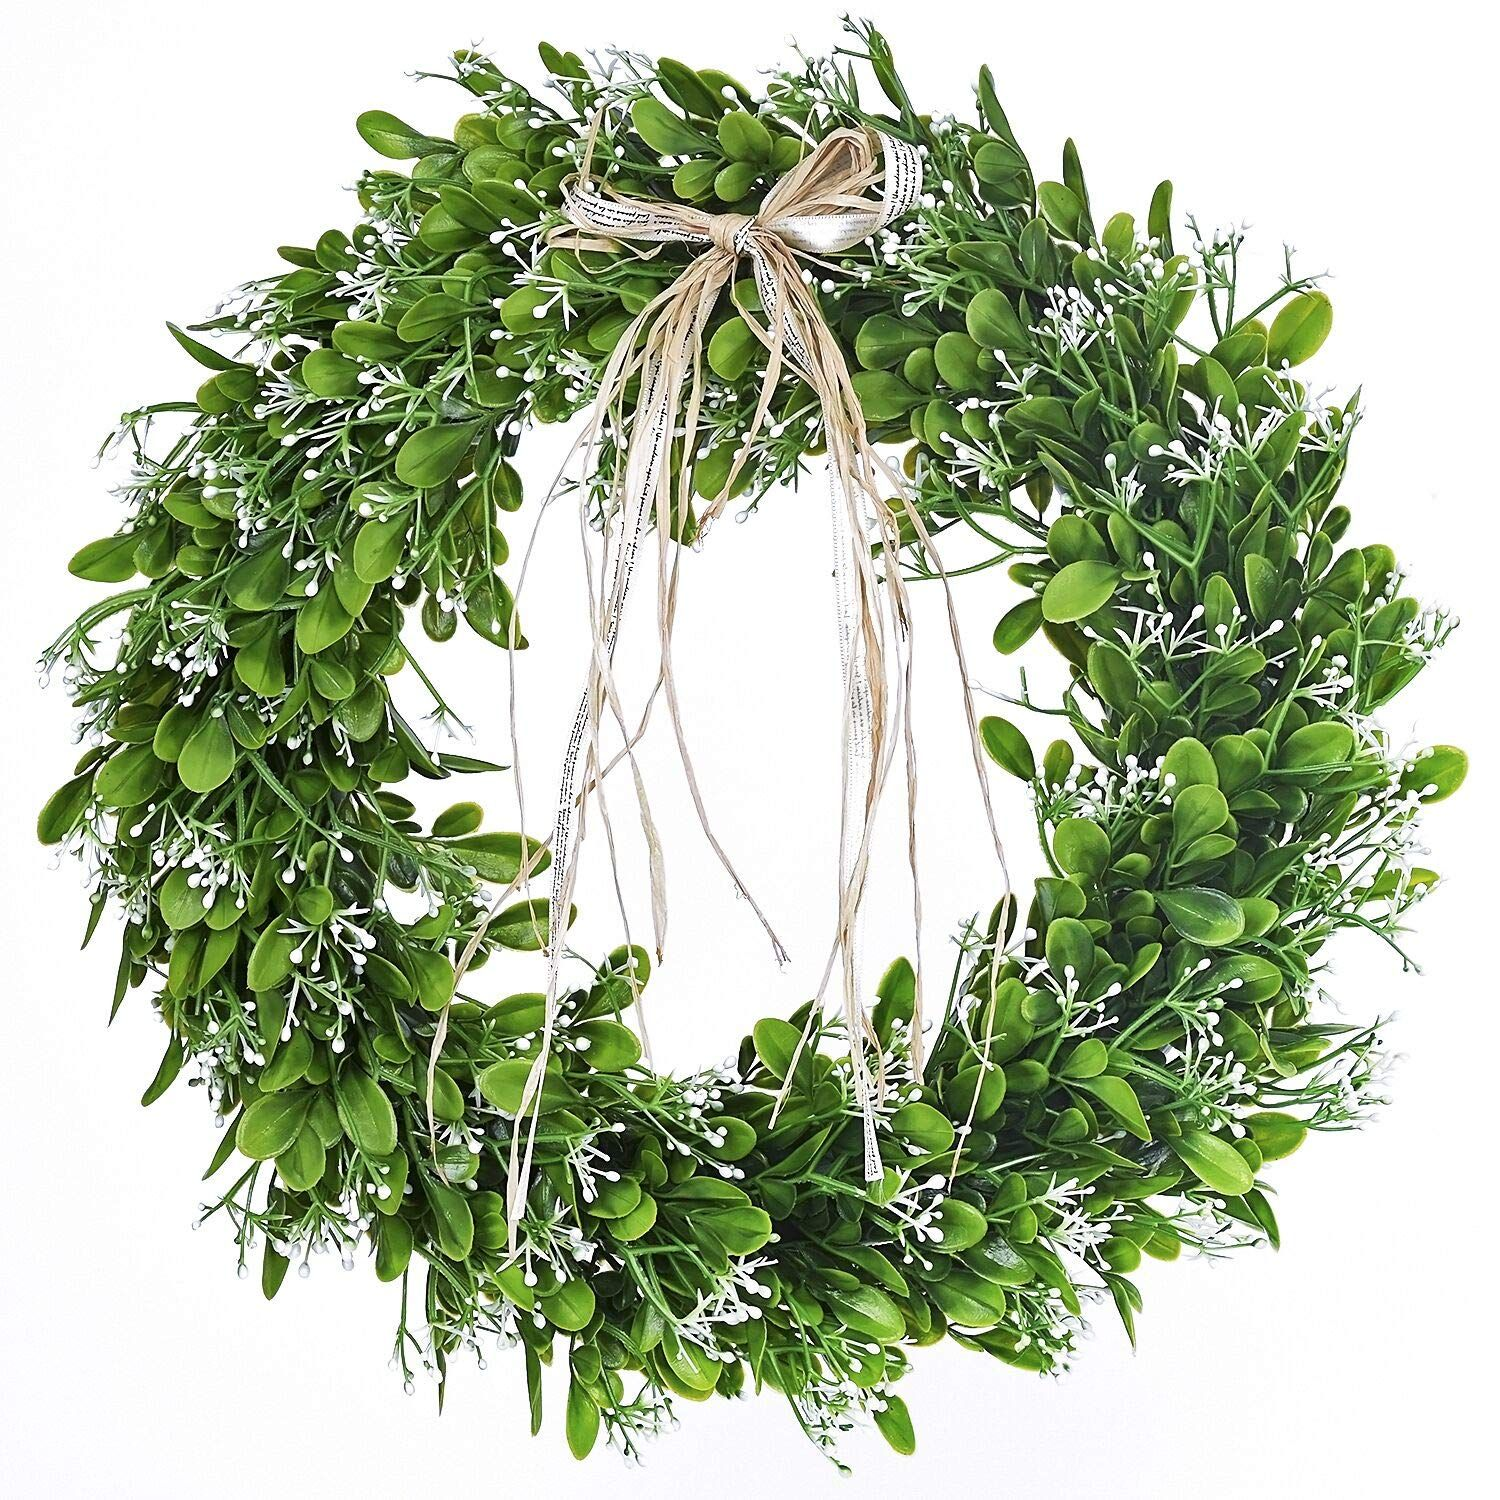 16 Inch Artificial Green Leaf Wreath With Bow Spring Front Door Wreath St Patricks Day Wreath In 2020 Spring Front Door Wreaths Wreaths For Front Door Farmhouse Wreath